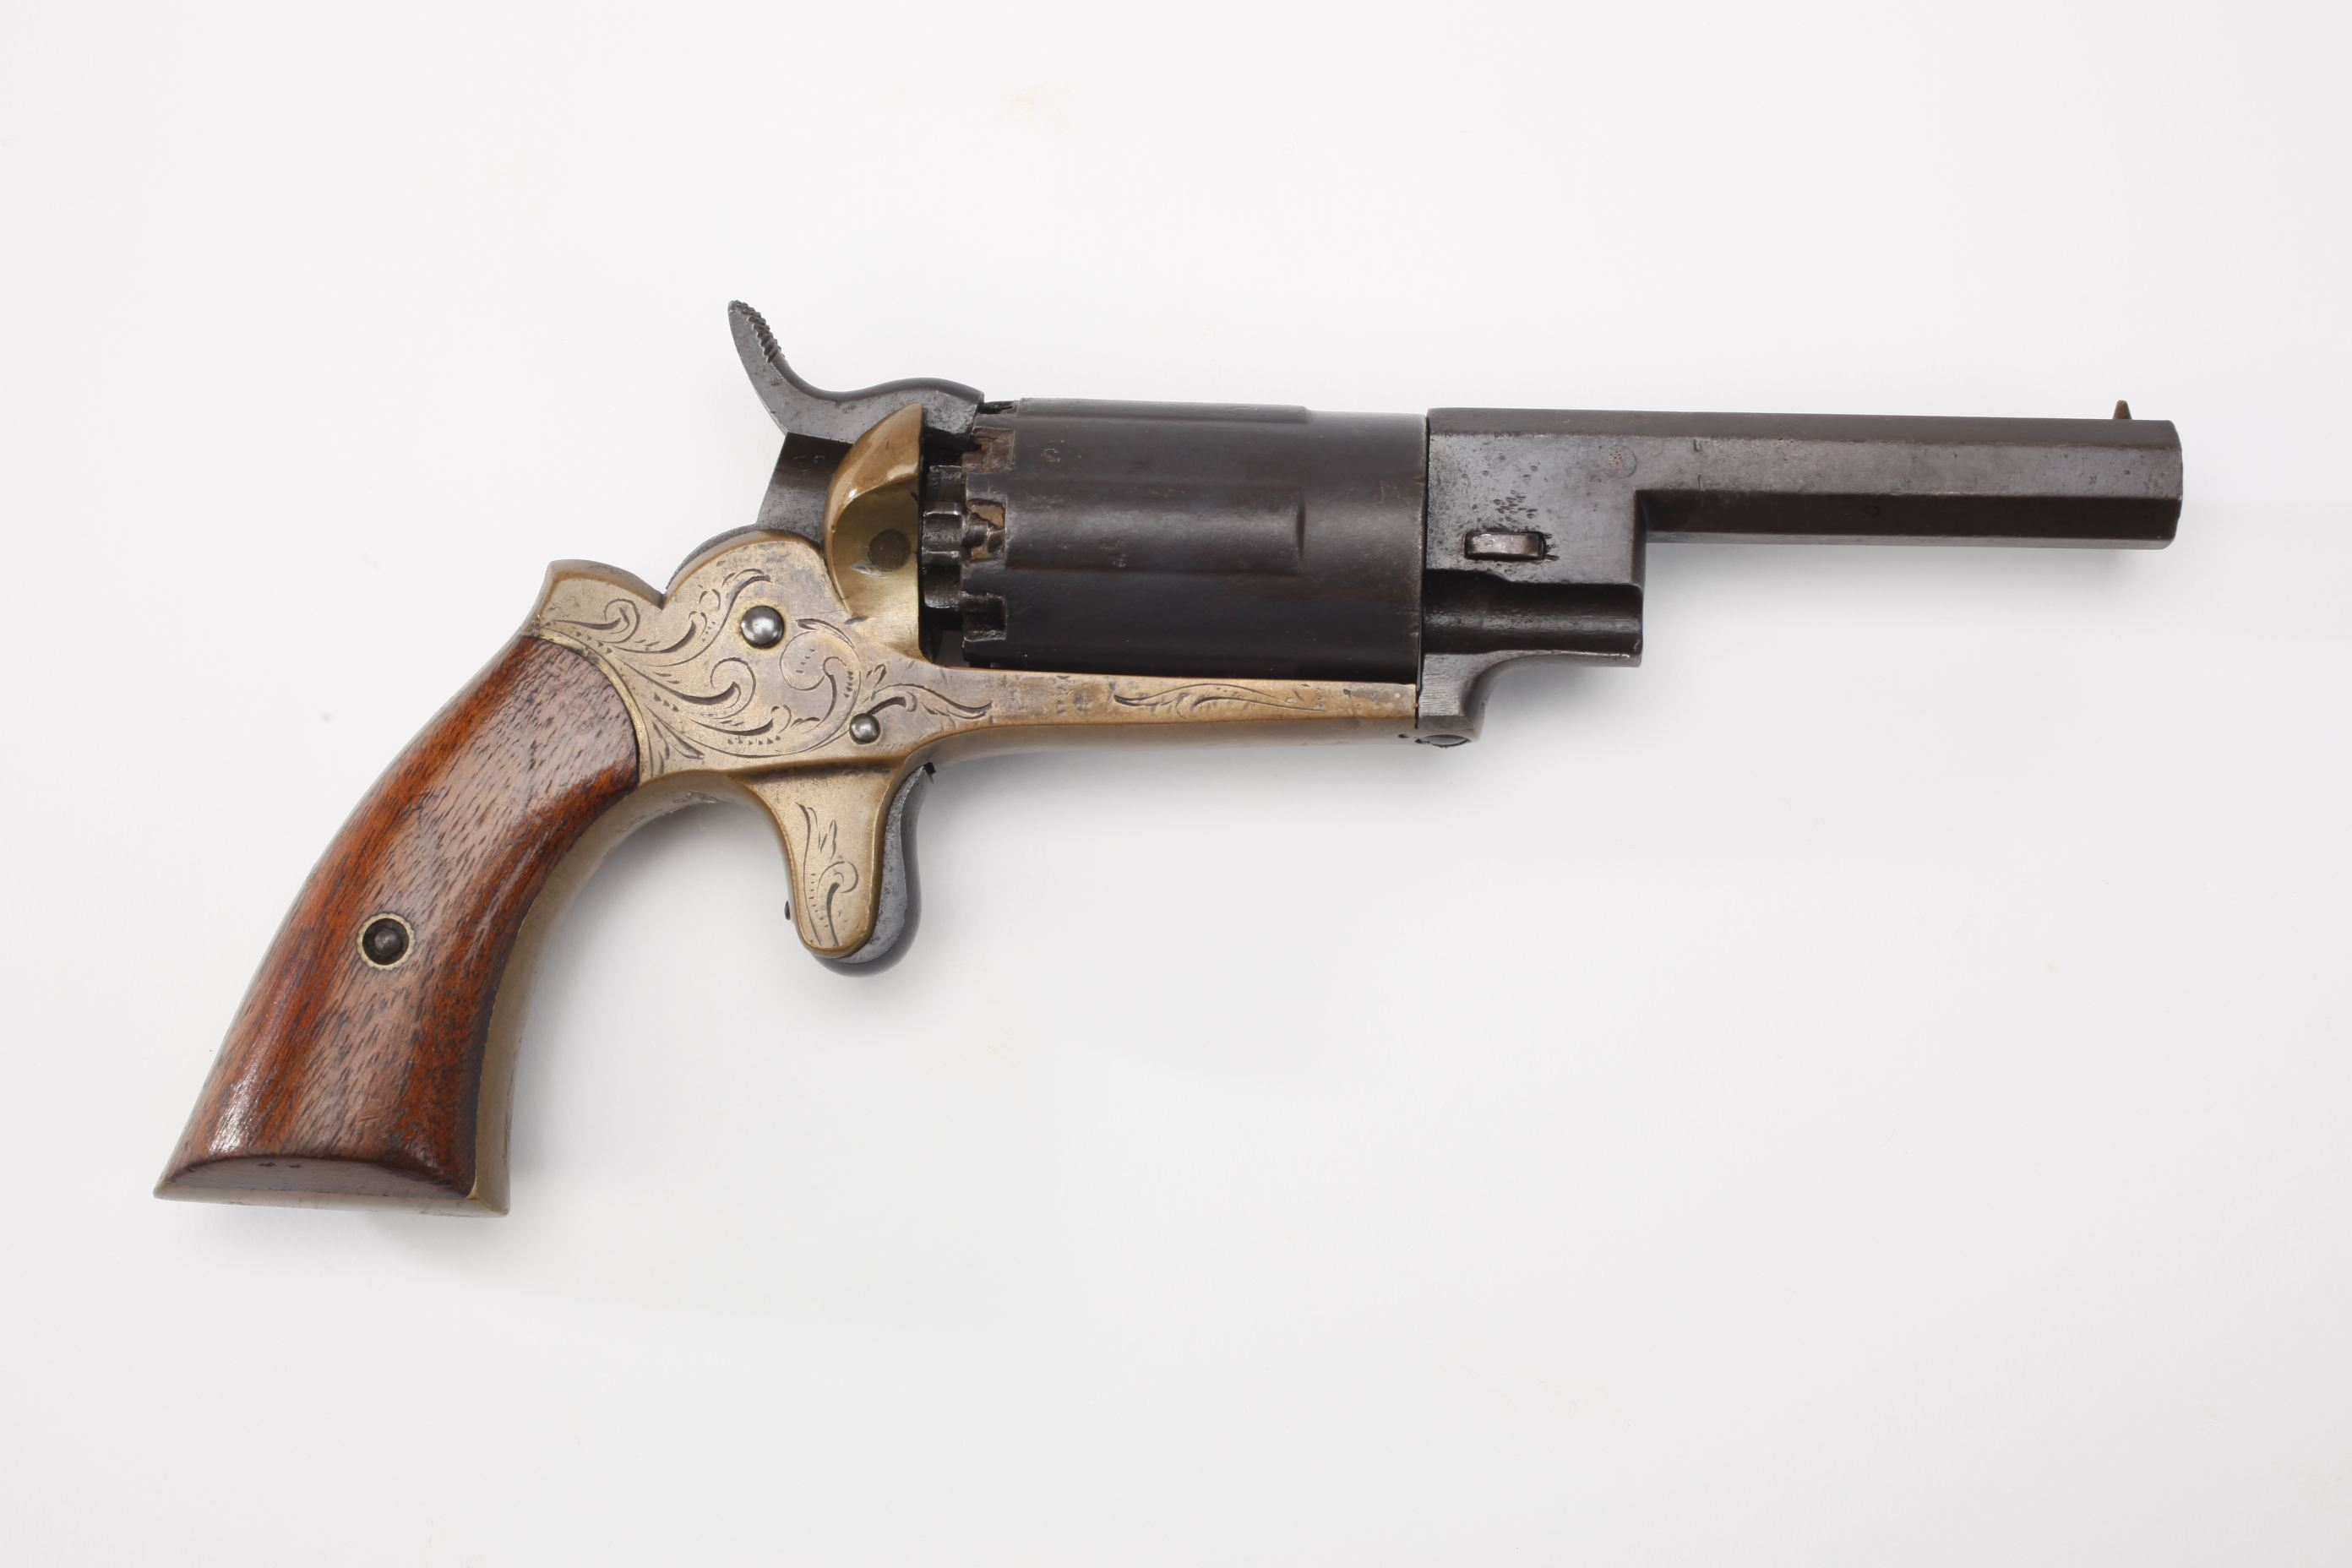 John Walch Pocket Model Revolver